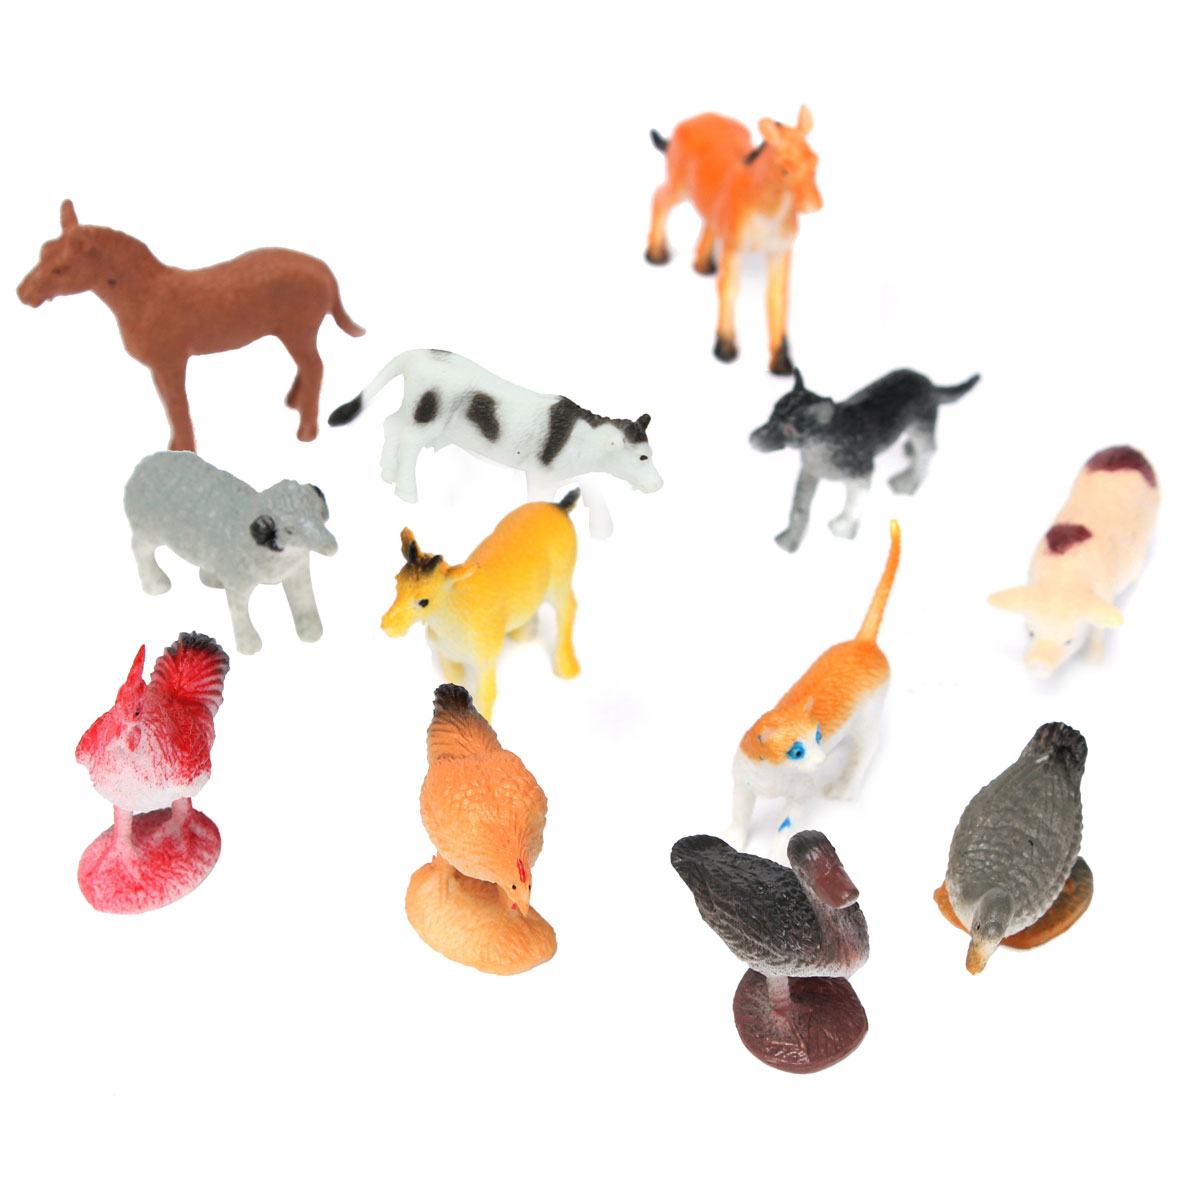 12PCS Farm Yard Figure Education Toys Plastic Pig Cow Horse Dog Animal Model Playset Toy... by